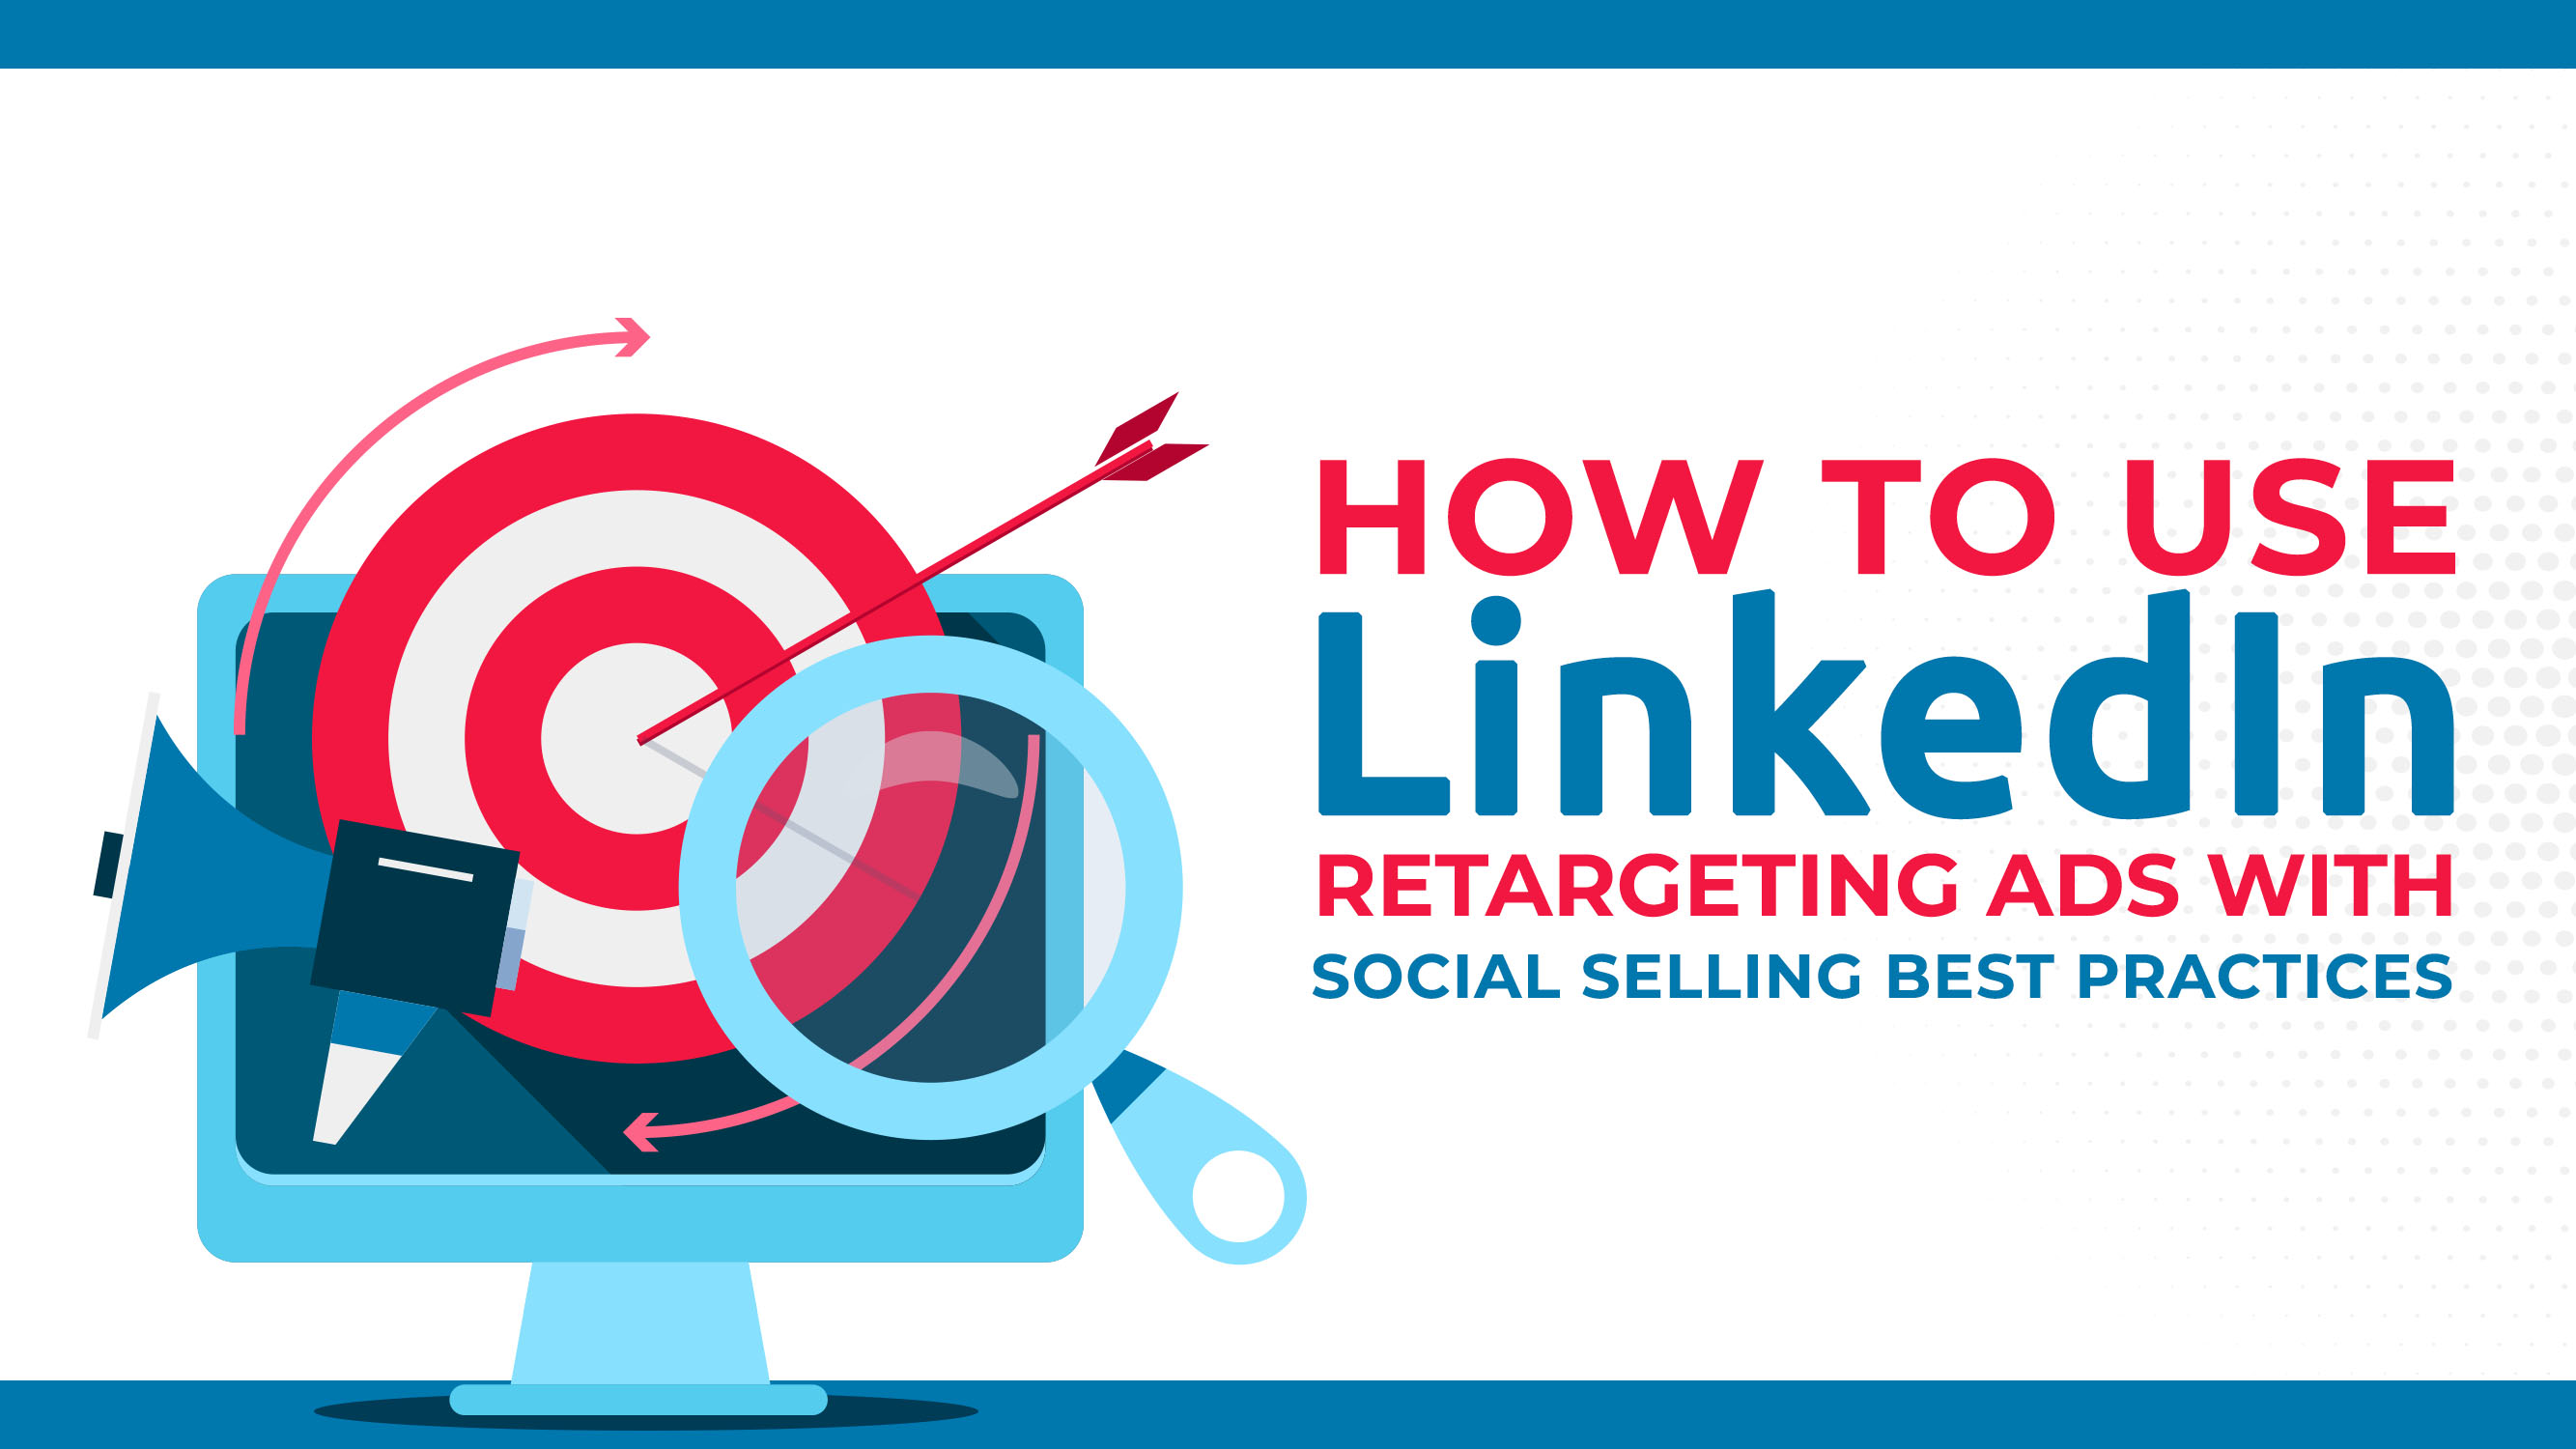 How To Use LinkedIn Retargeting Ads With Social Selling Best Practices